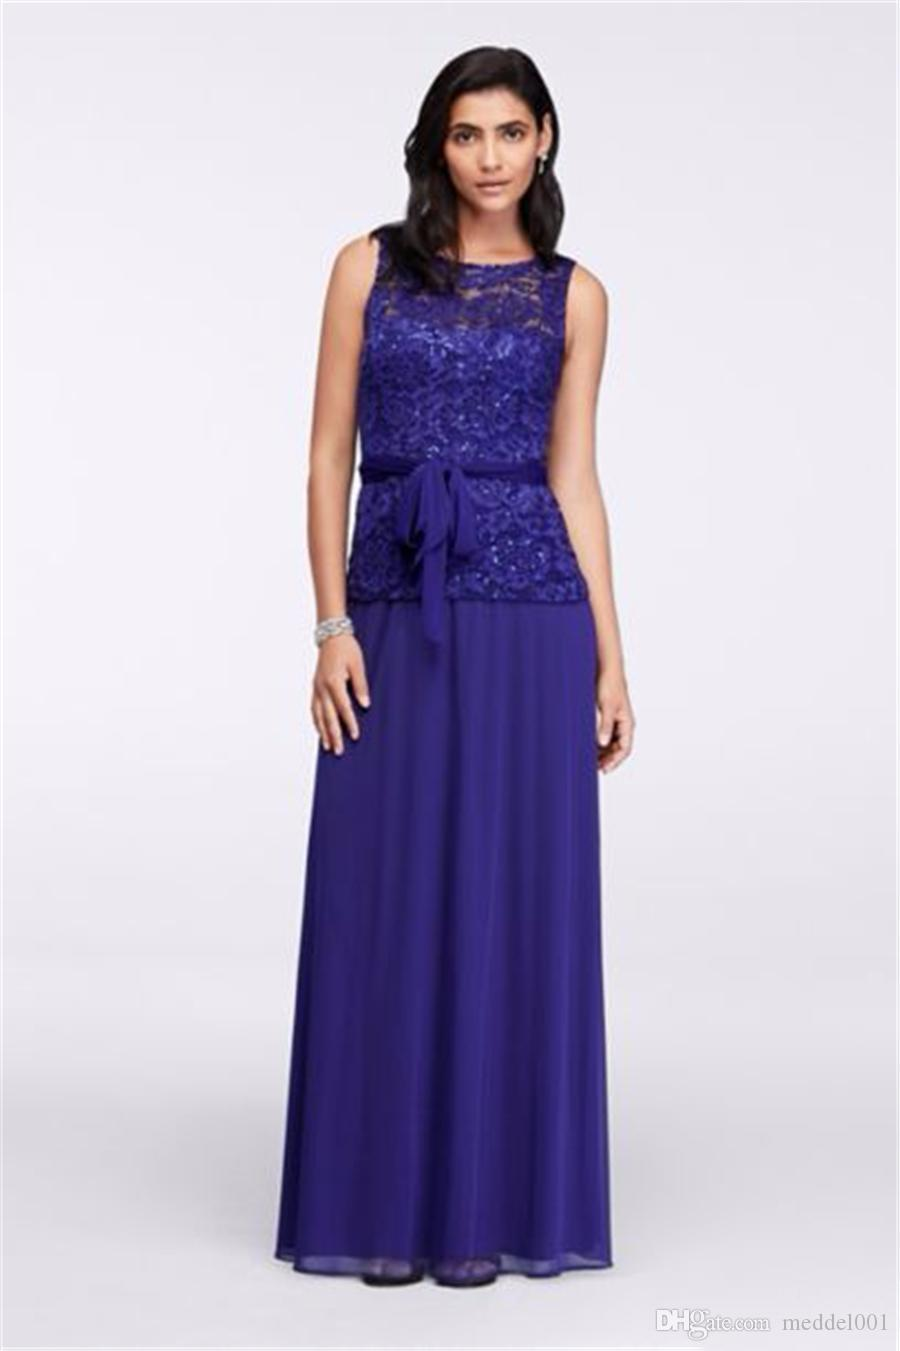 A-Line Sleeveless Lace-Bodice Dress with Waist Tie Royal Blue Sexy Mother of the Bridal Wedding Party Dress Formal Dresses